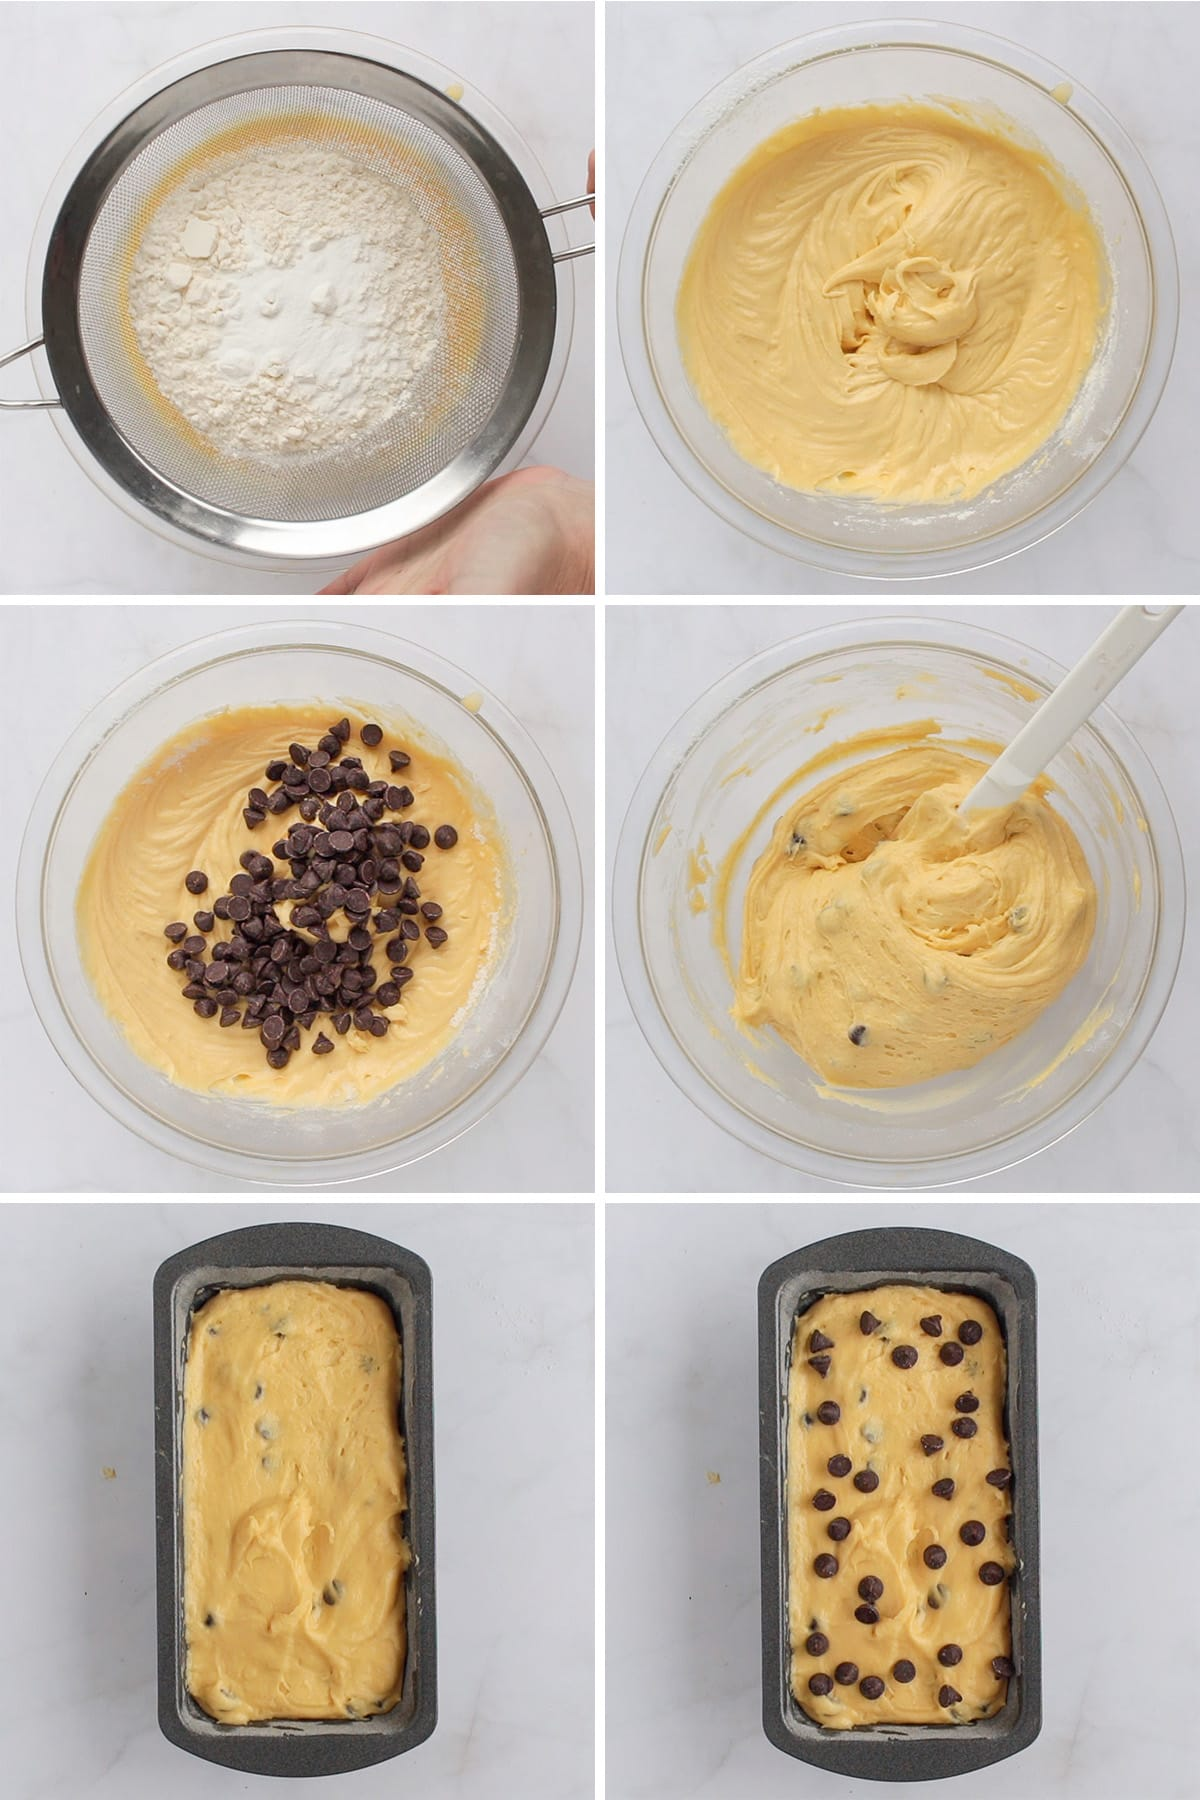 Process Shot 2: adding the dry ingredients and chocolate chips